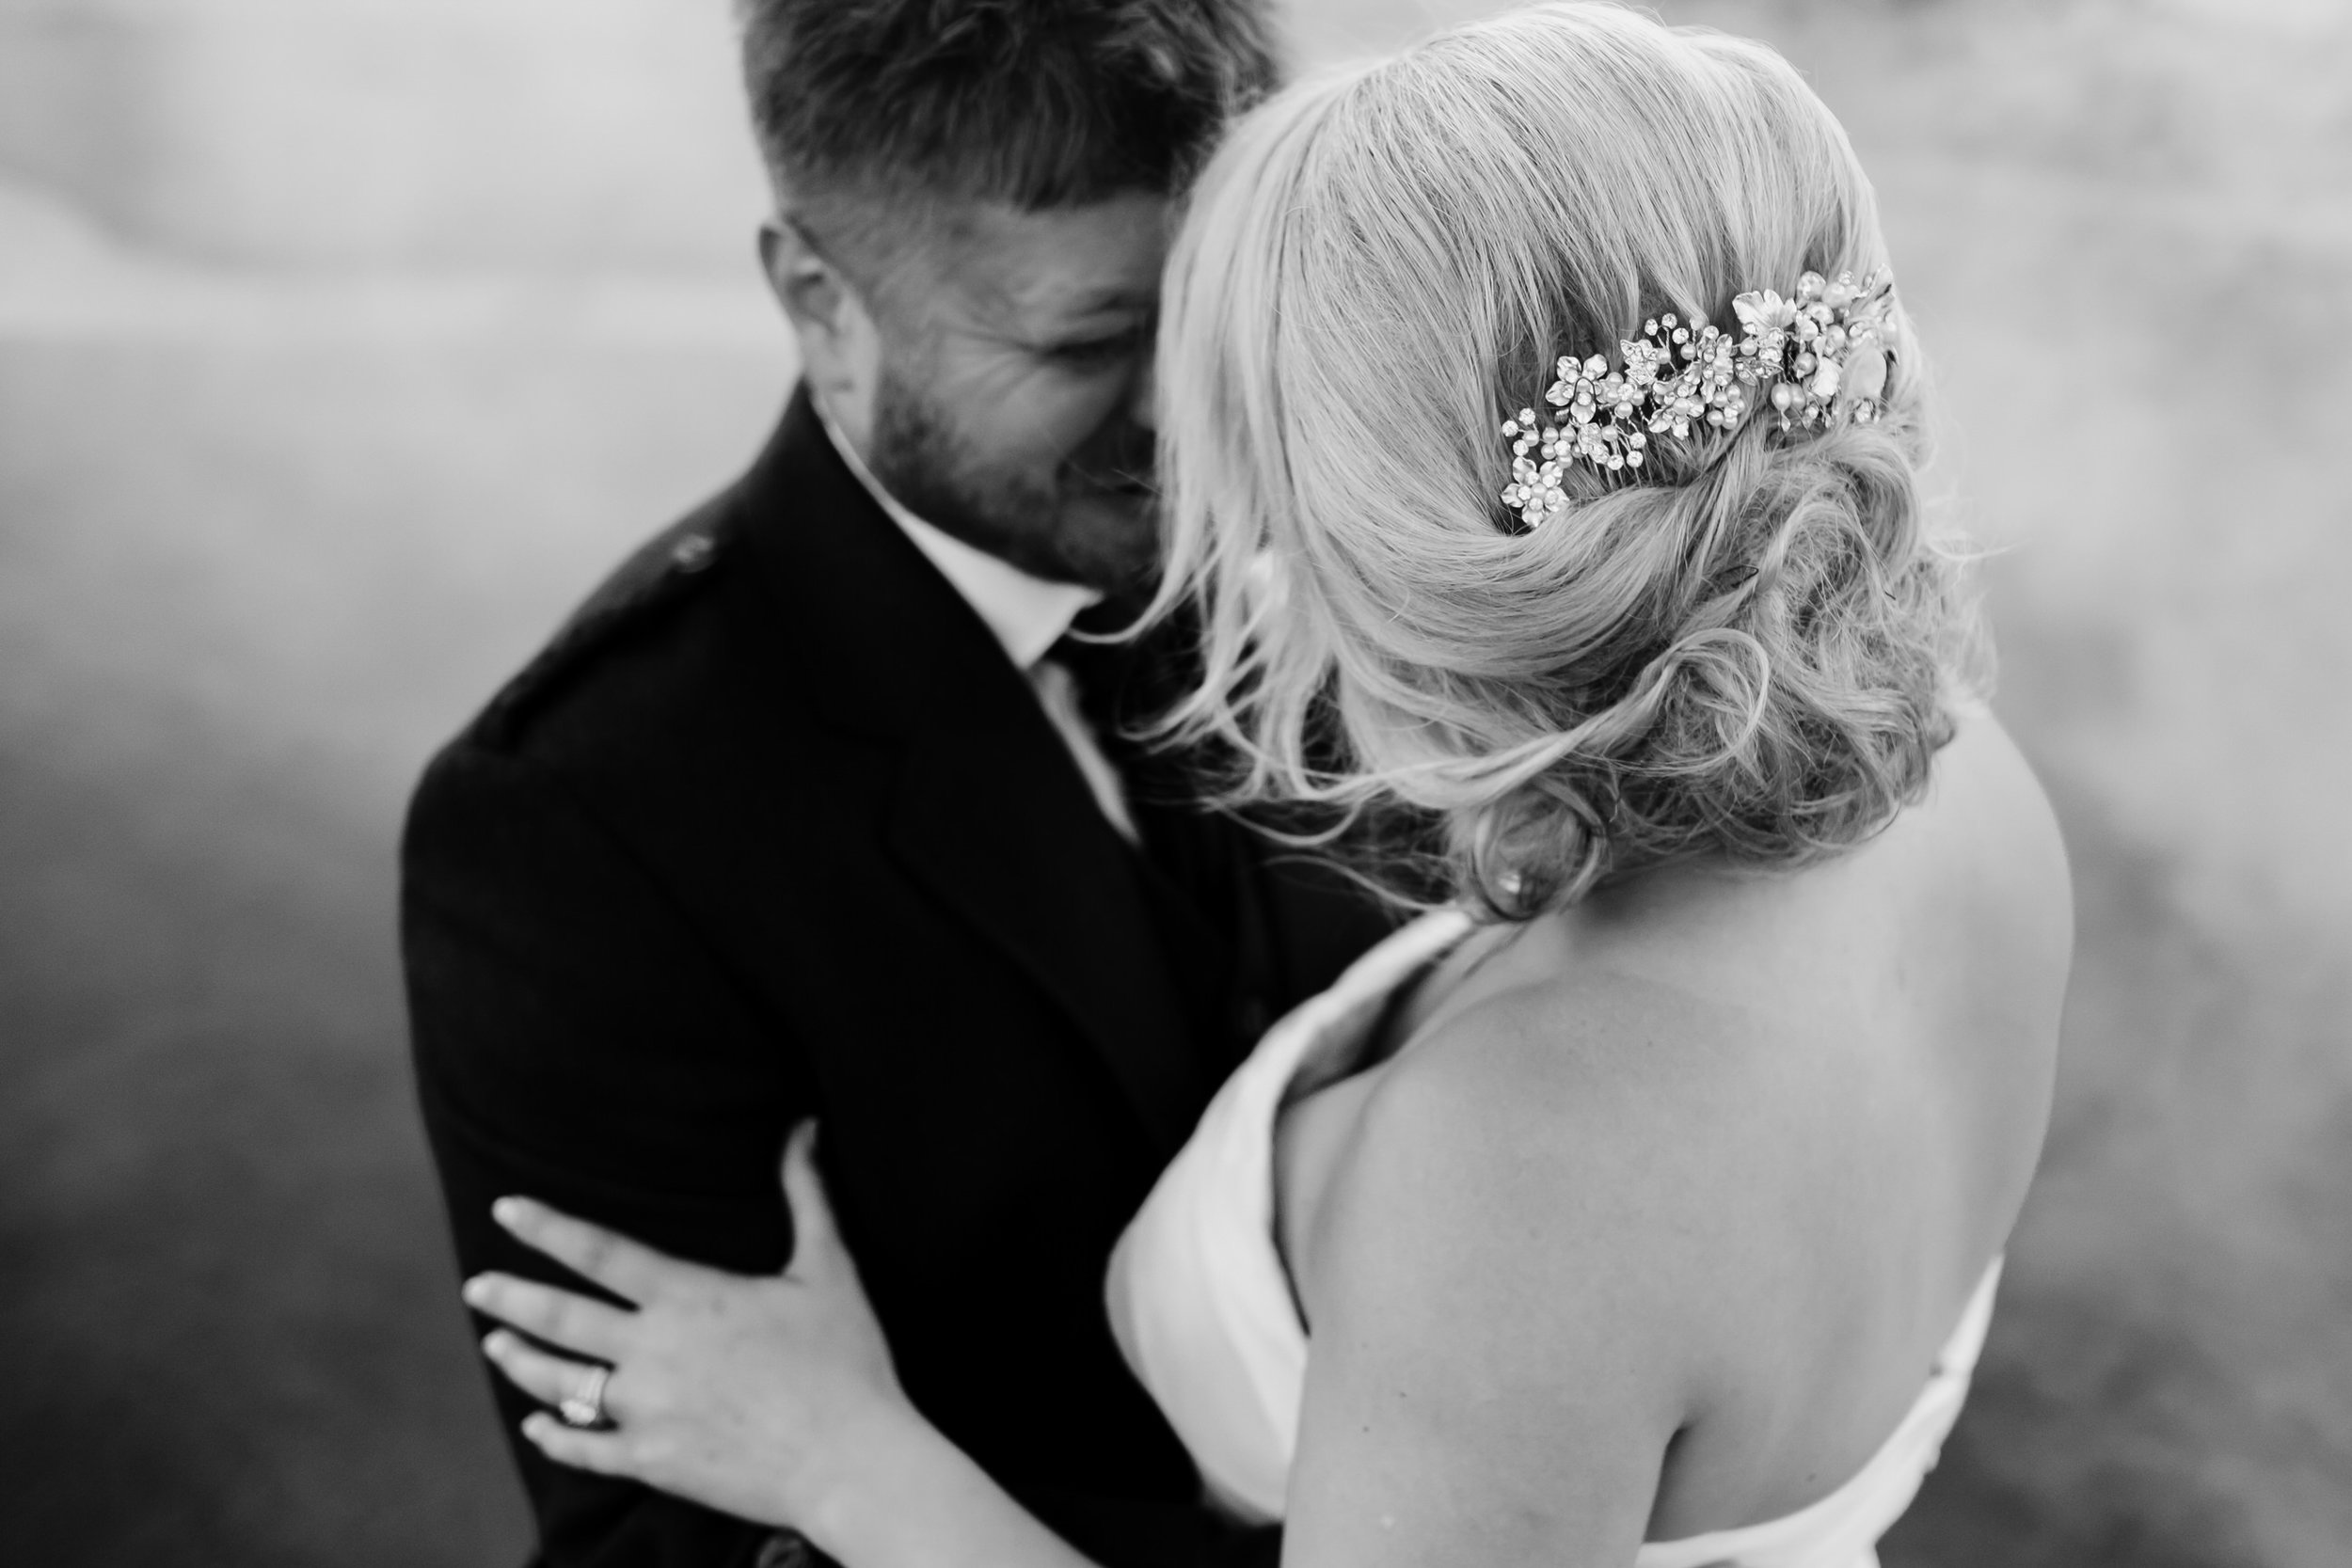 742-2017-07-22-Louise-and-Jims-wedding-Turnberry.JPG